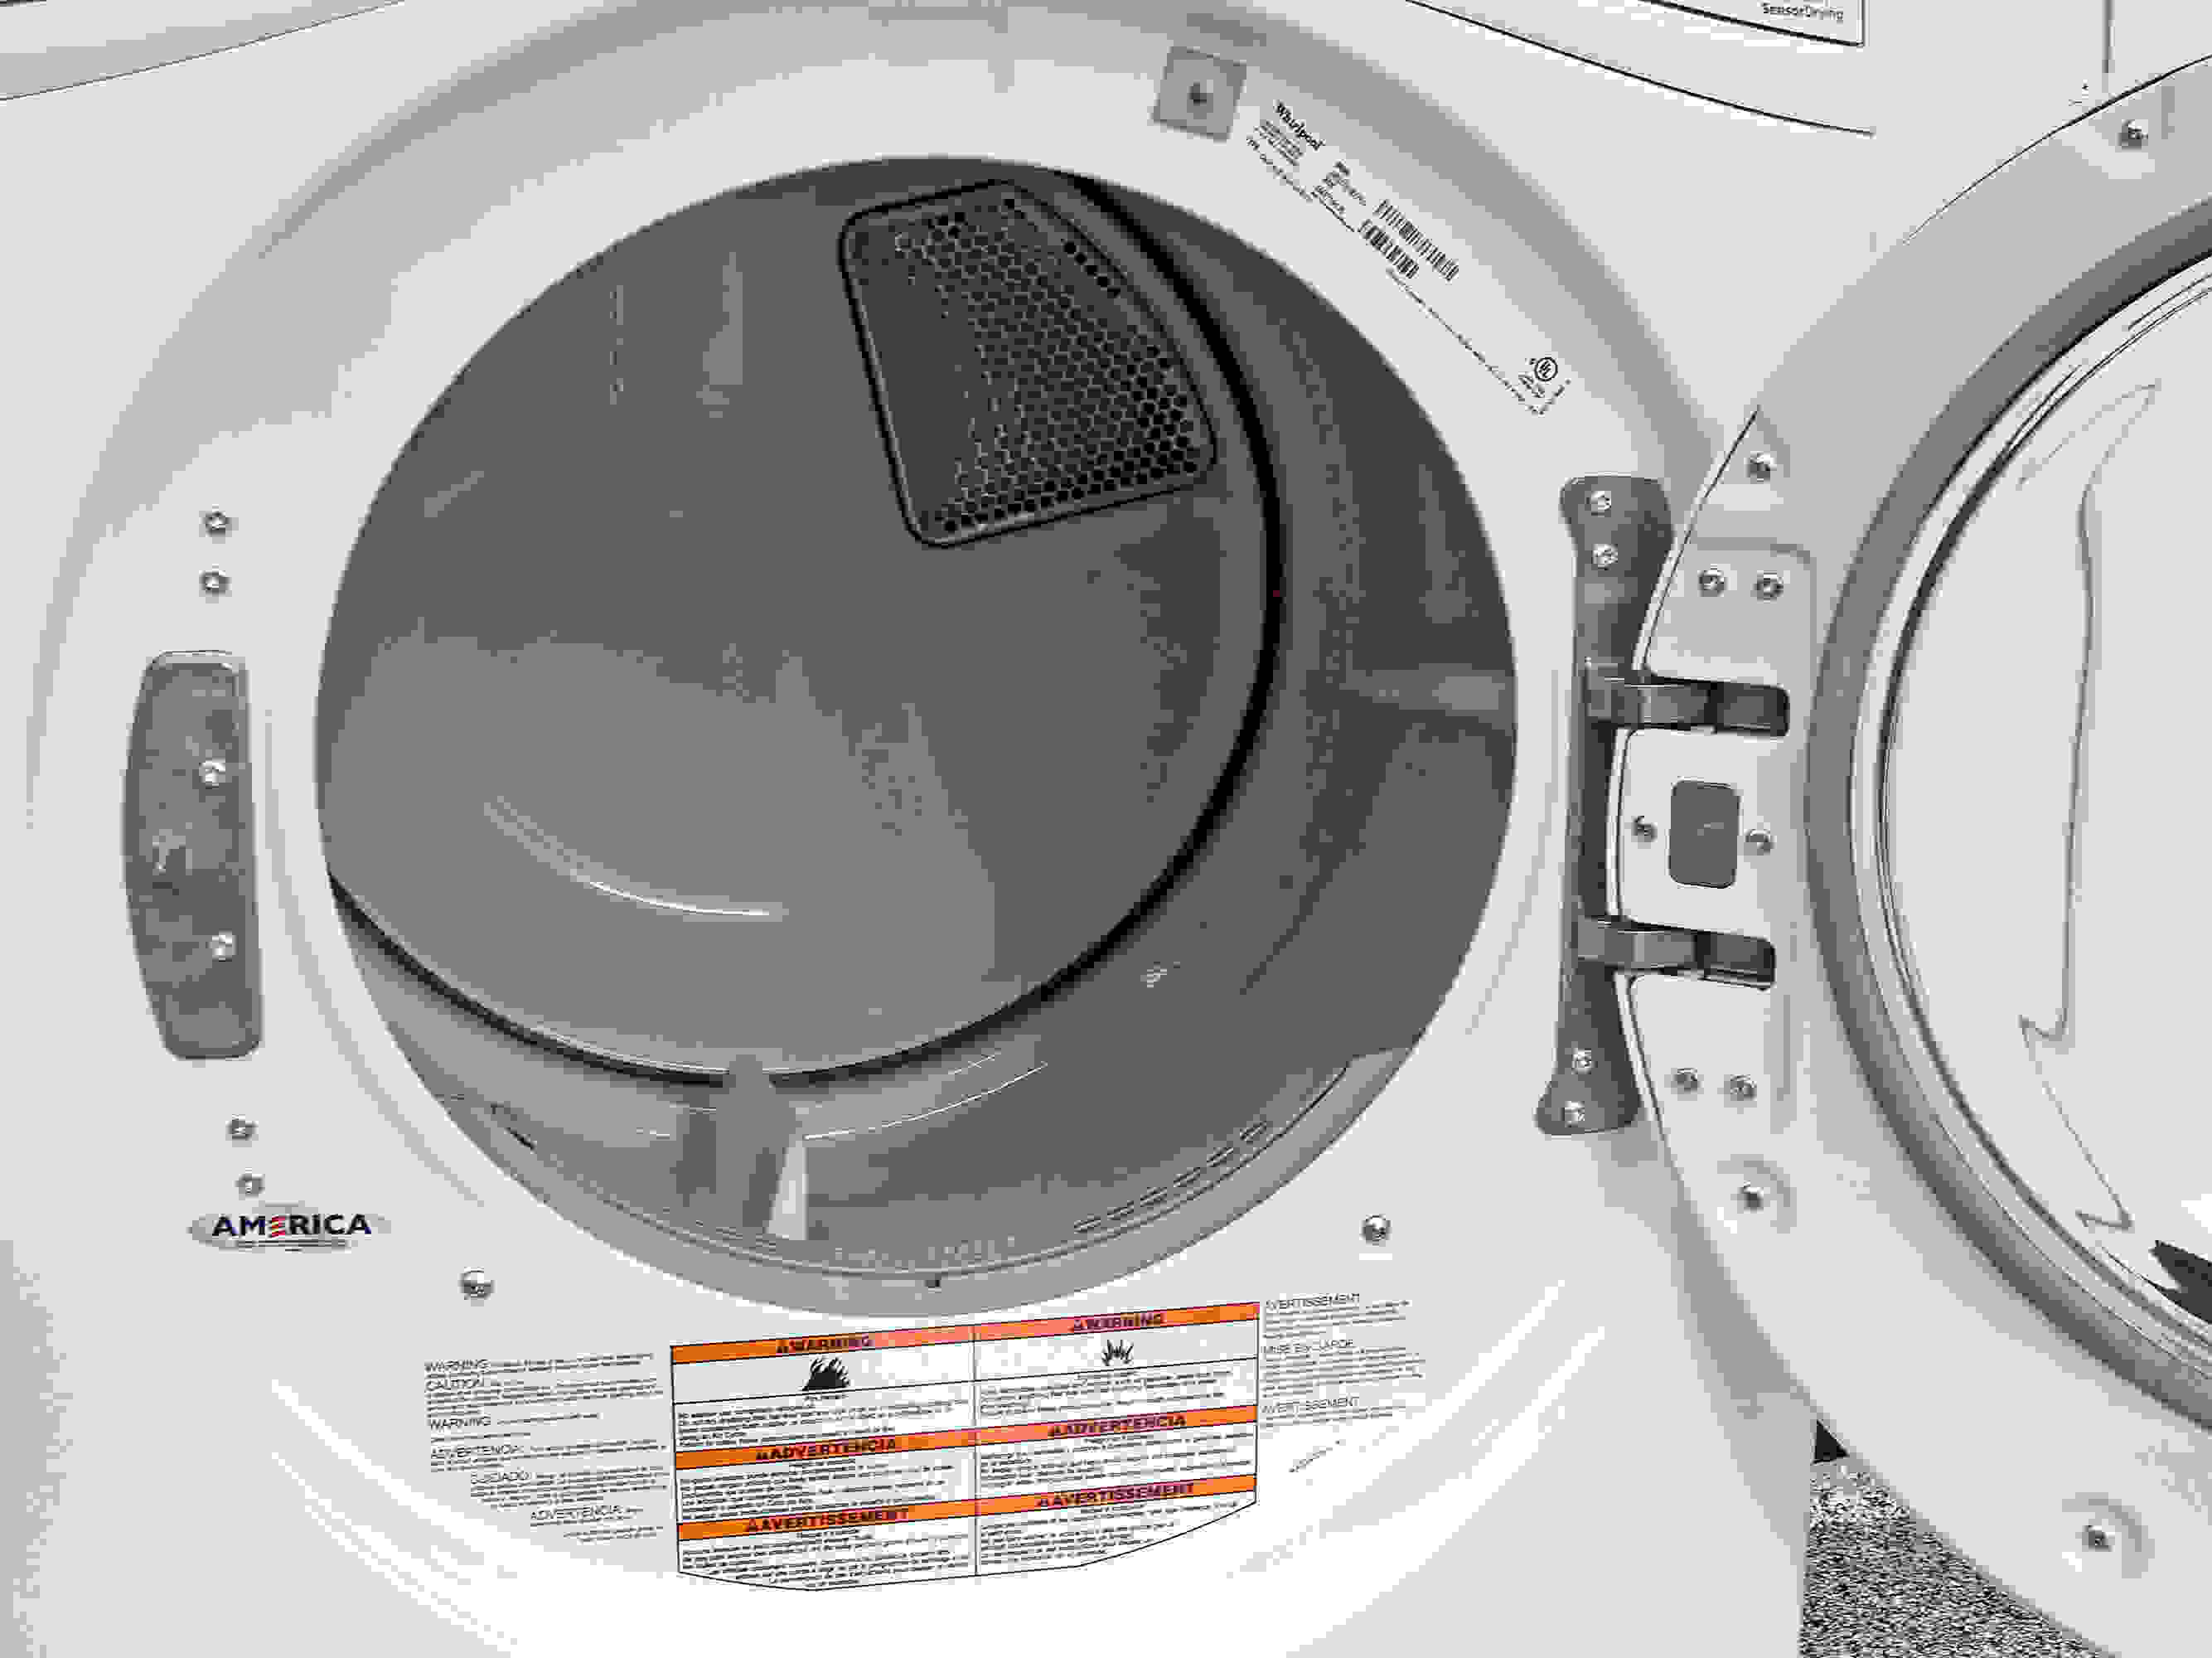 A white powder coated drum is pretty much guaranteed for dryers in the price range of the Whirlpool Duet WED72HEDW.